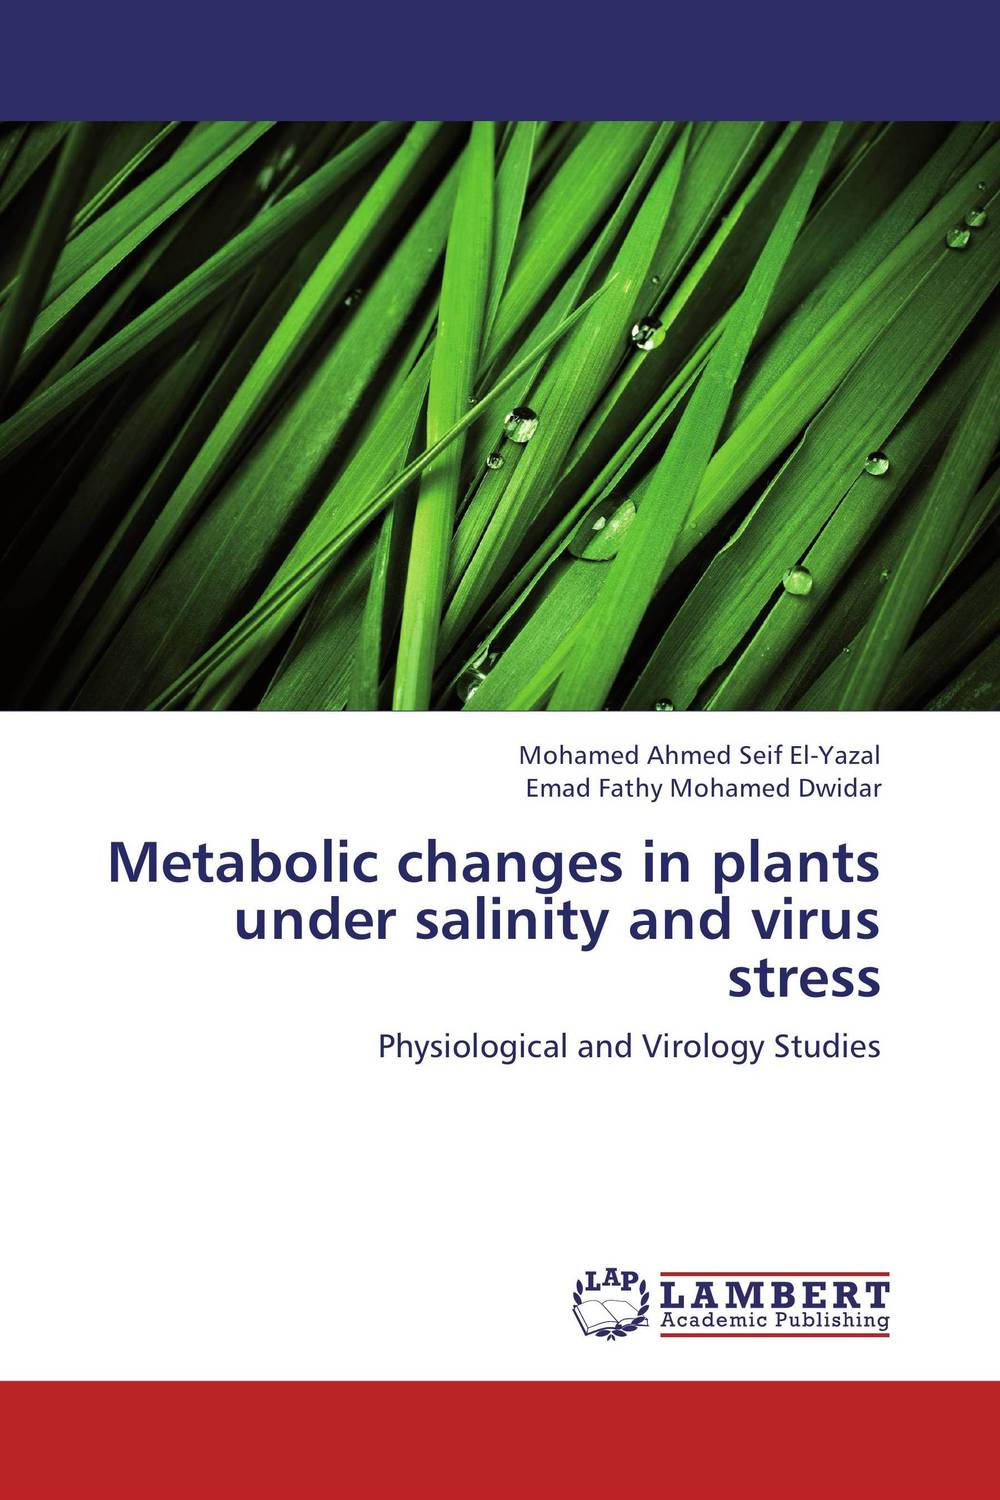 Metabolic changes in plants under salinity and virus stress deciphering the role of yap4 phosphorylation under stress conditions